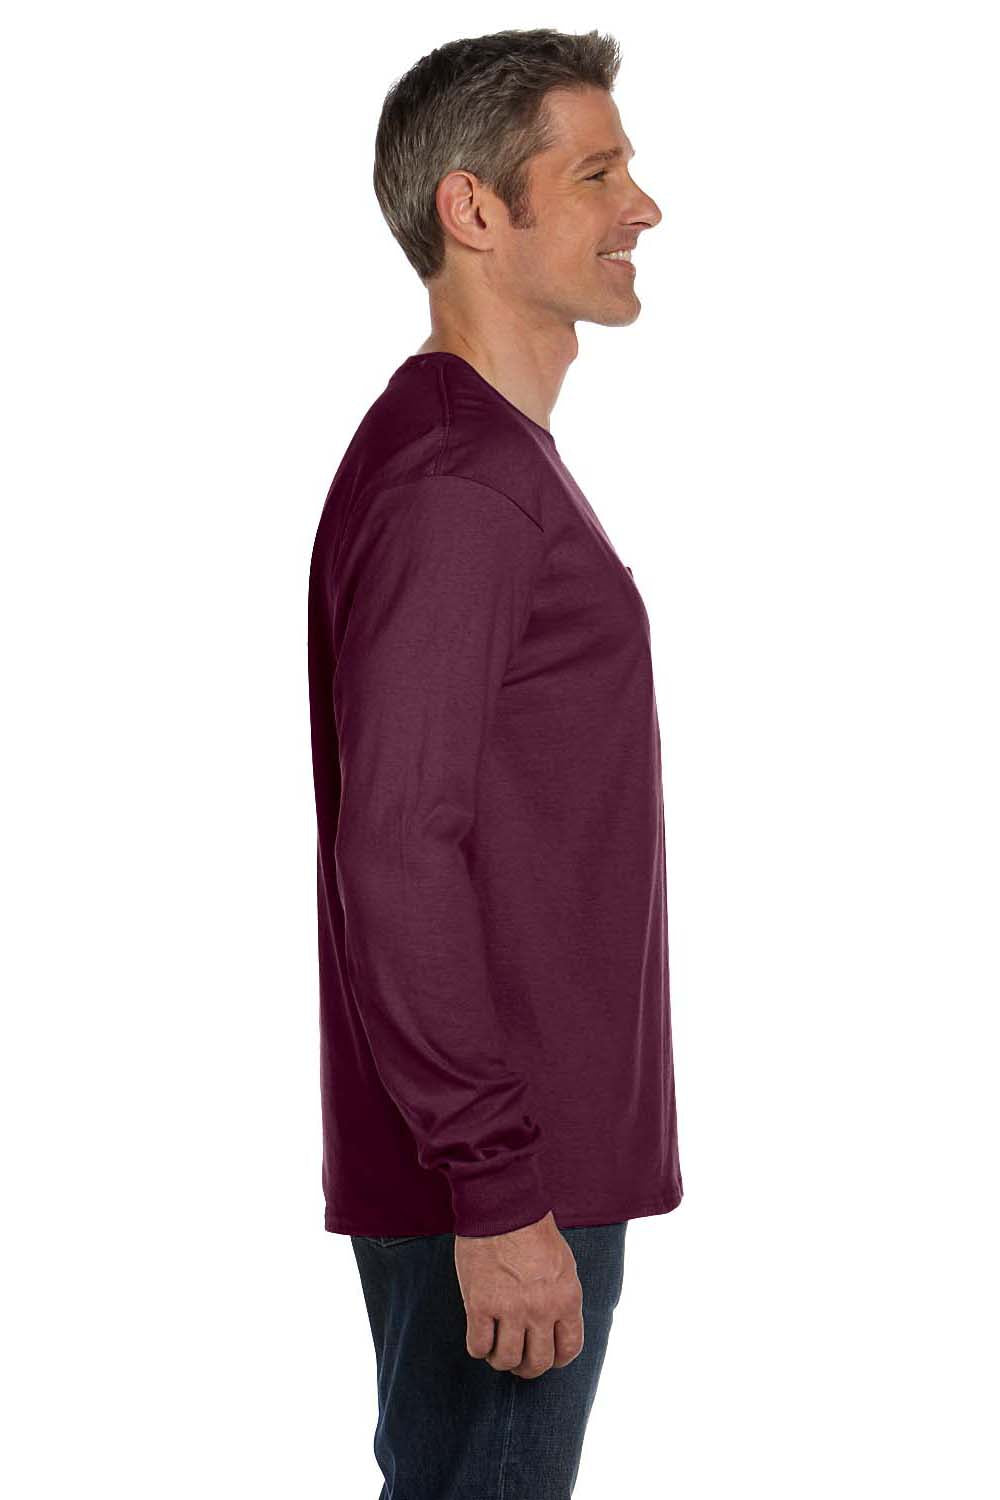 Hanes 5596 Mens ComfortSoft Long Sleeve Crewneck T-Shirt w/ Pocket Maroon Side